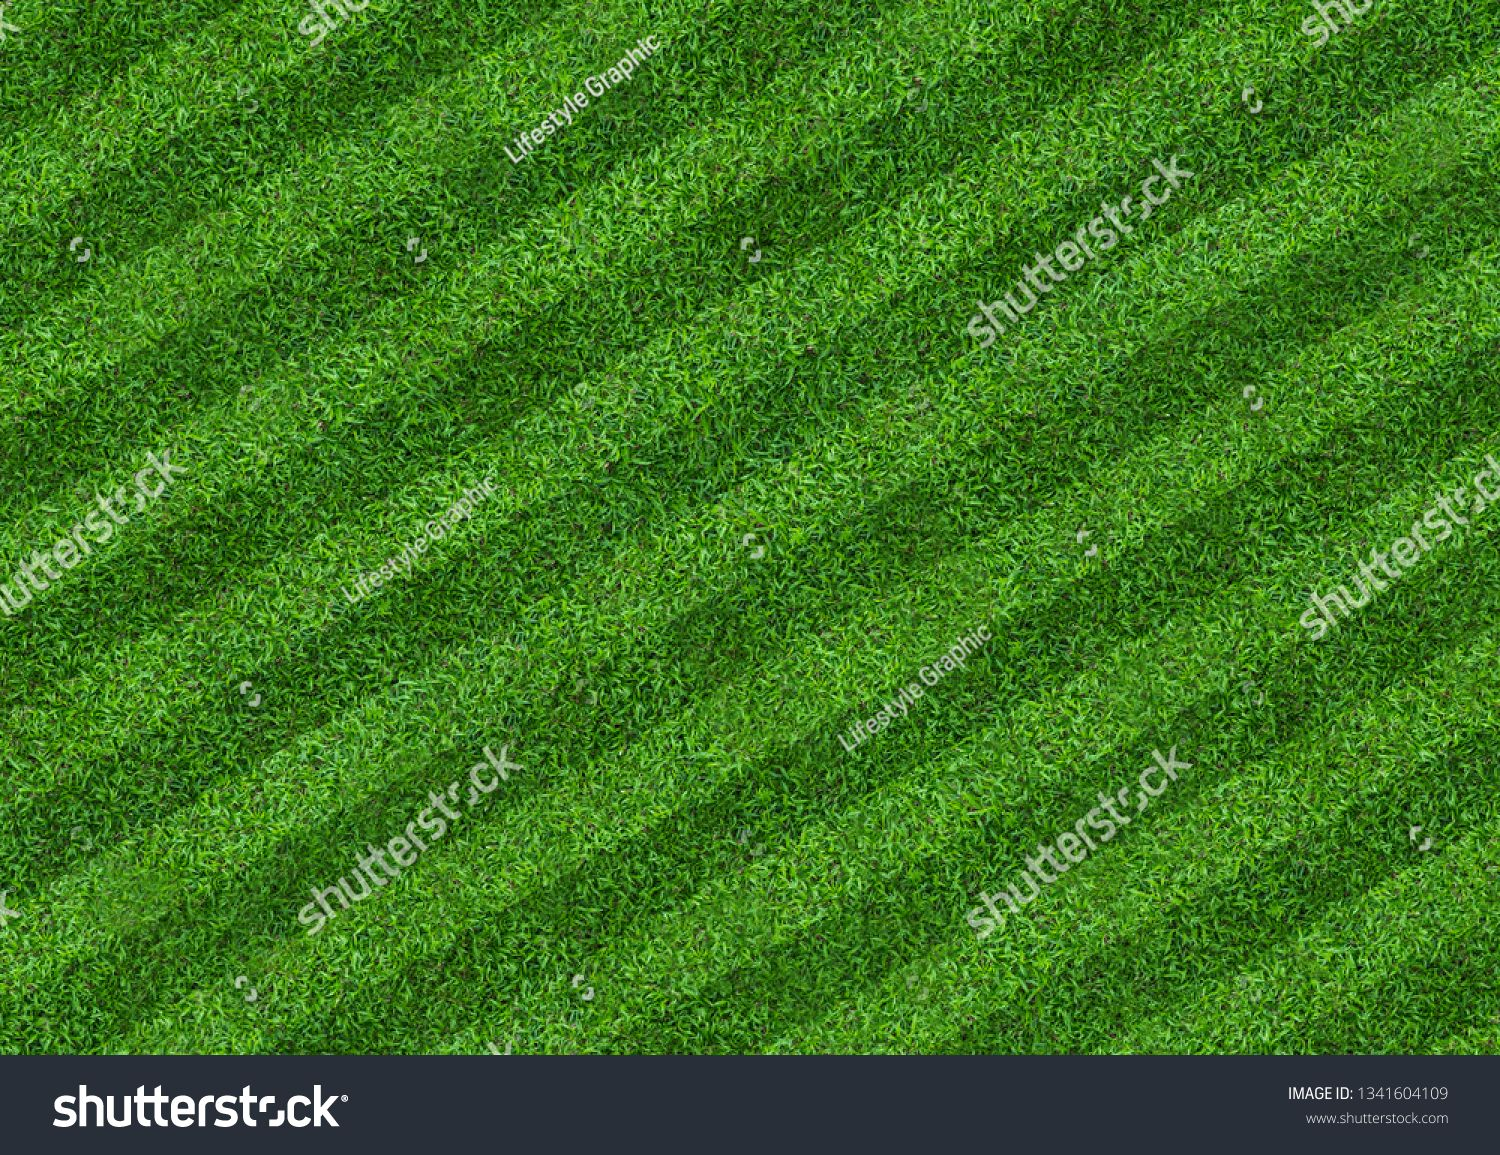 Green Grass Field Background For Soccer And Football Sports Green Lawn Pattern And Texture Background Close Up Image Ad Grass Field Green Grass Green Lawn